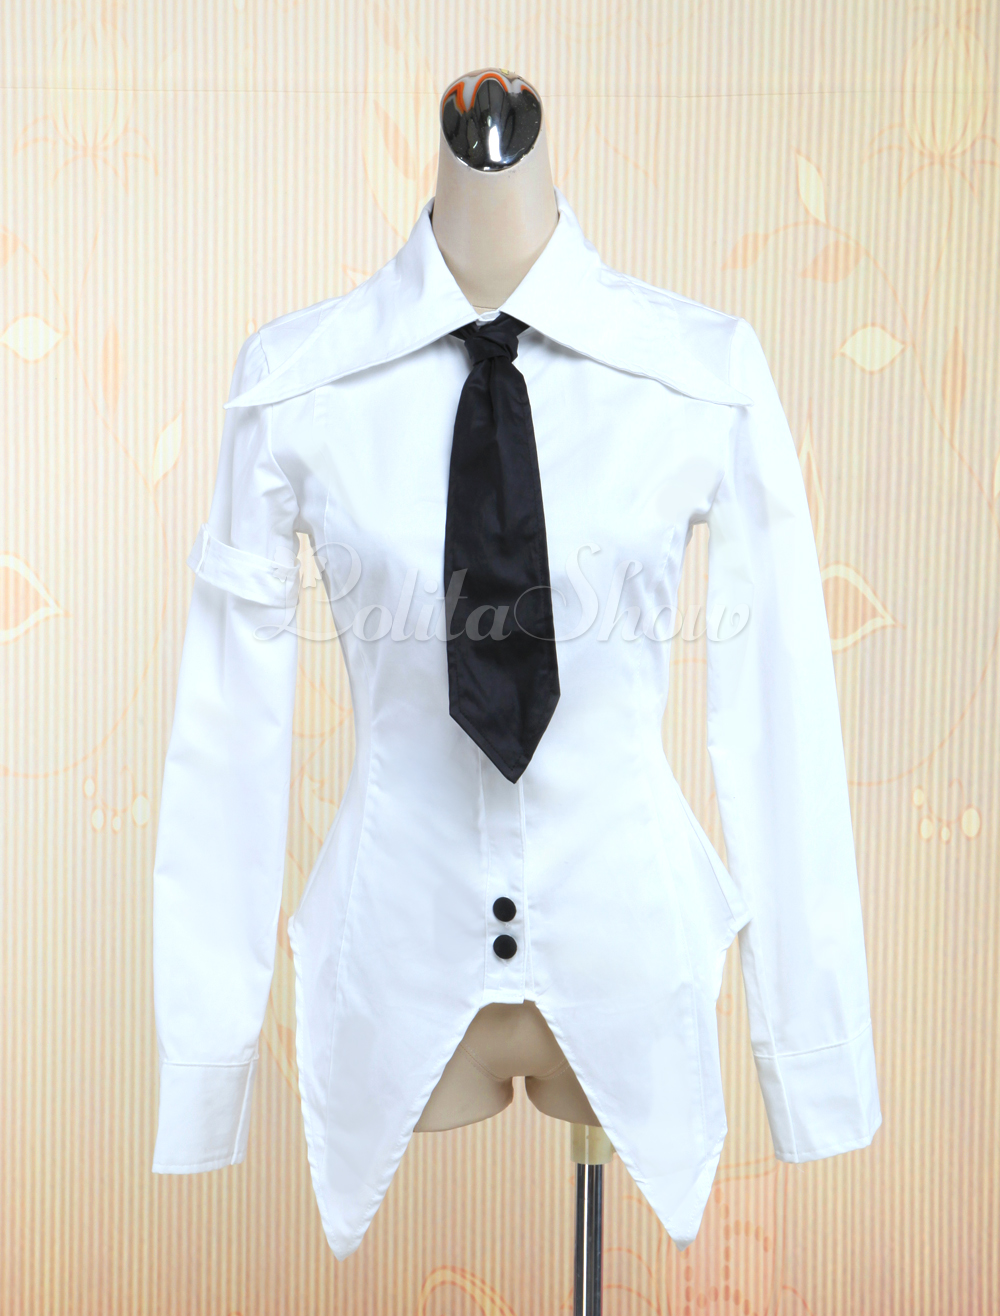 d1e1cee1799 Lolitashow White Cotton Lolita Blouse with Black Tie Long Sleeves Sharp  Front Trim - Lolitashow.com